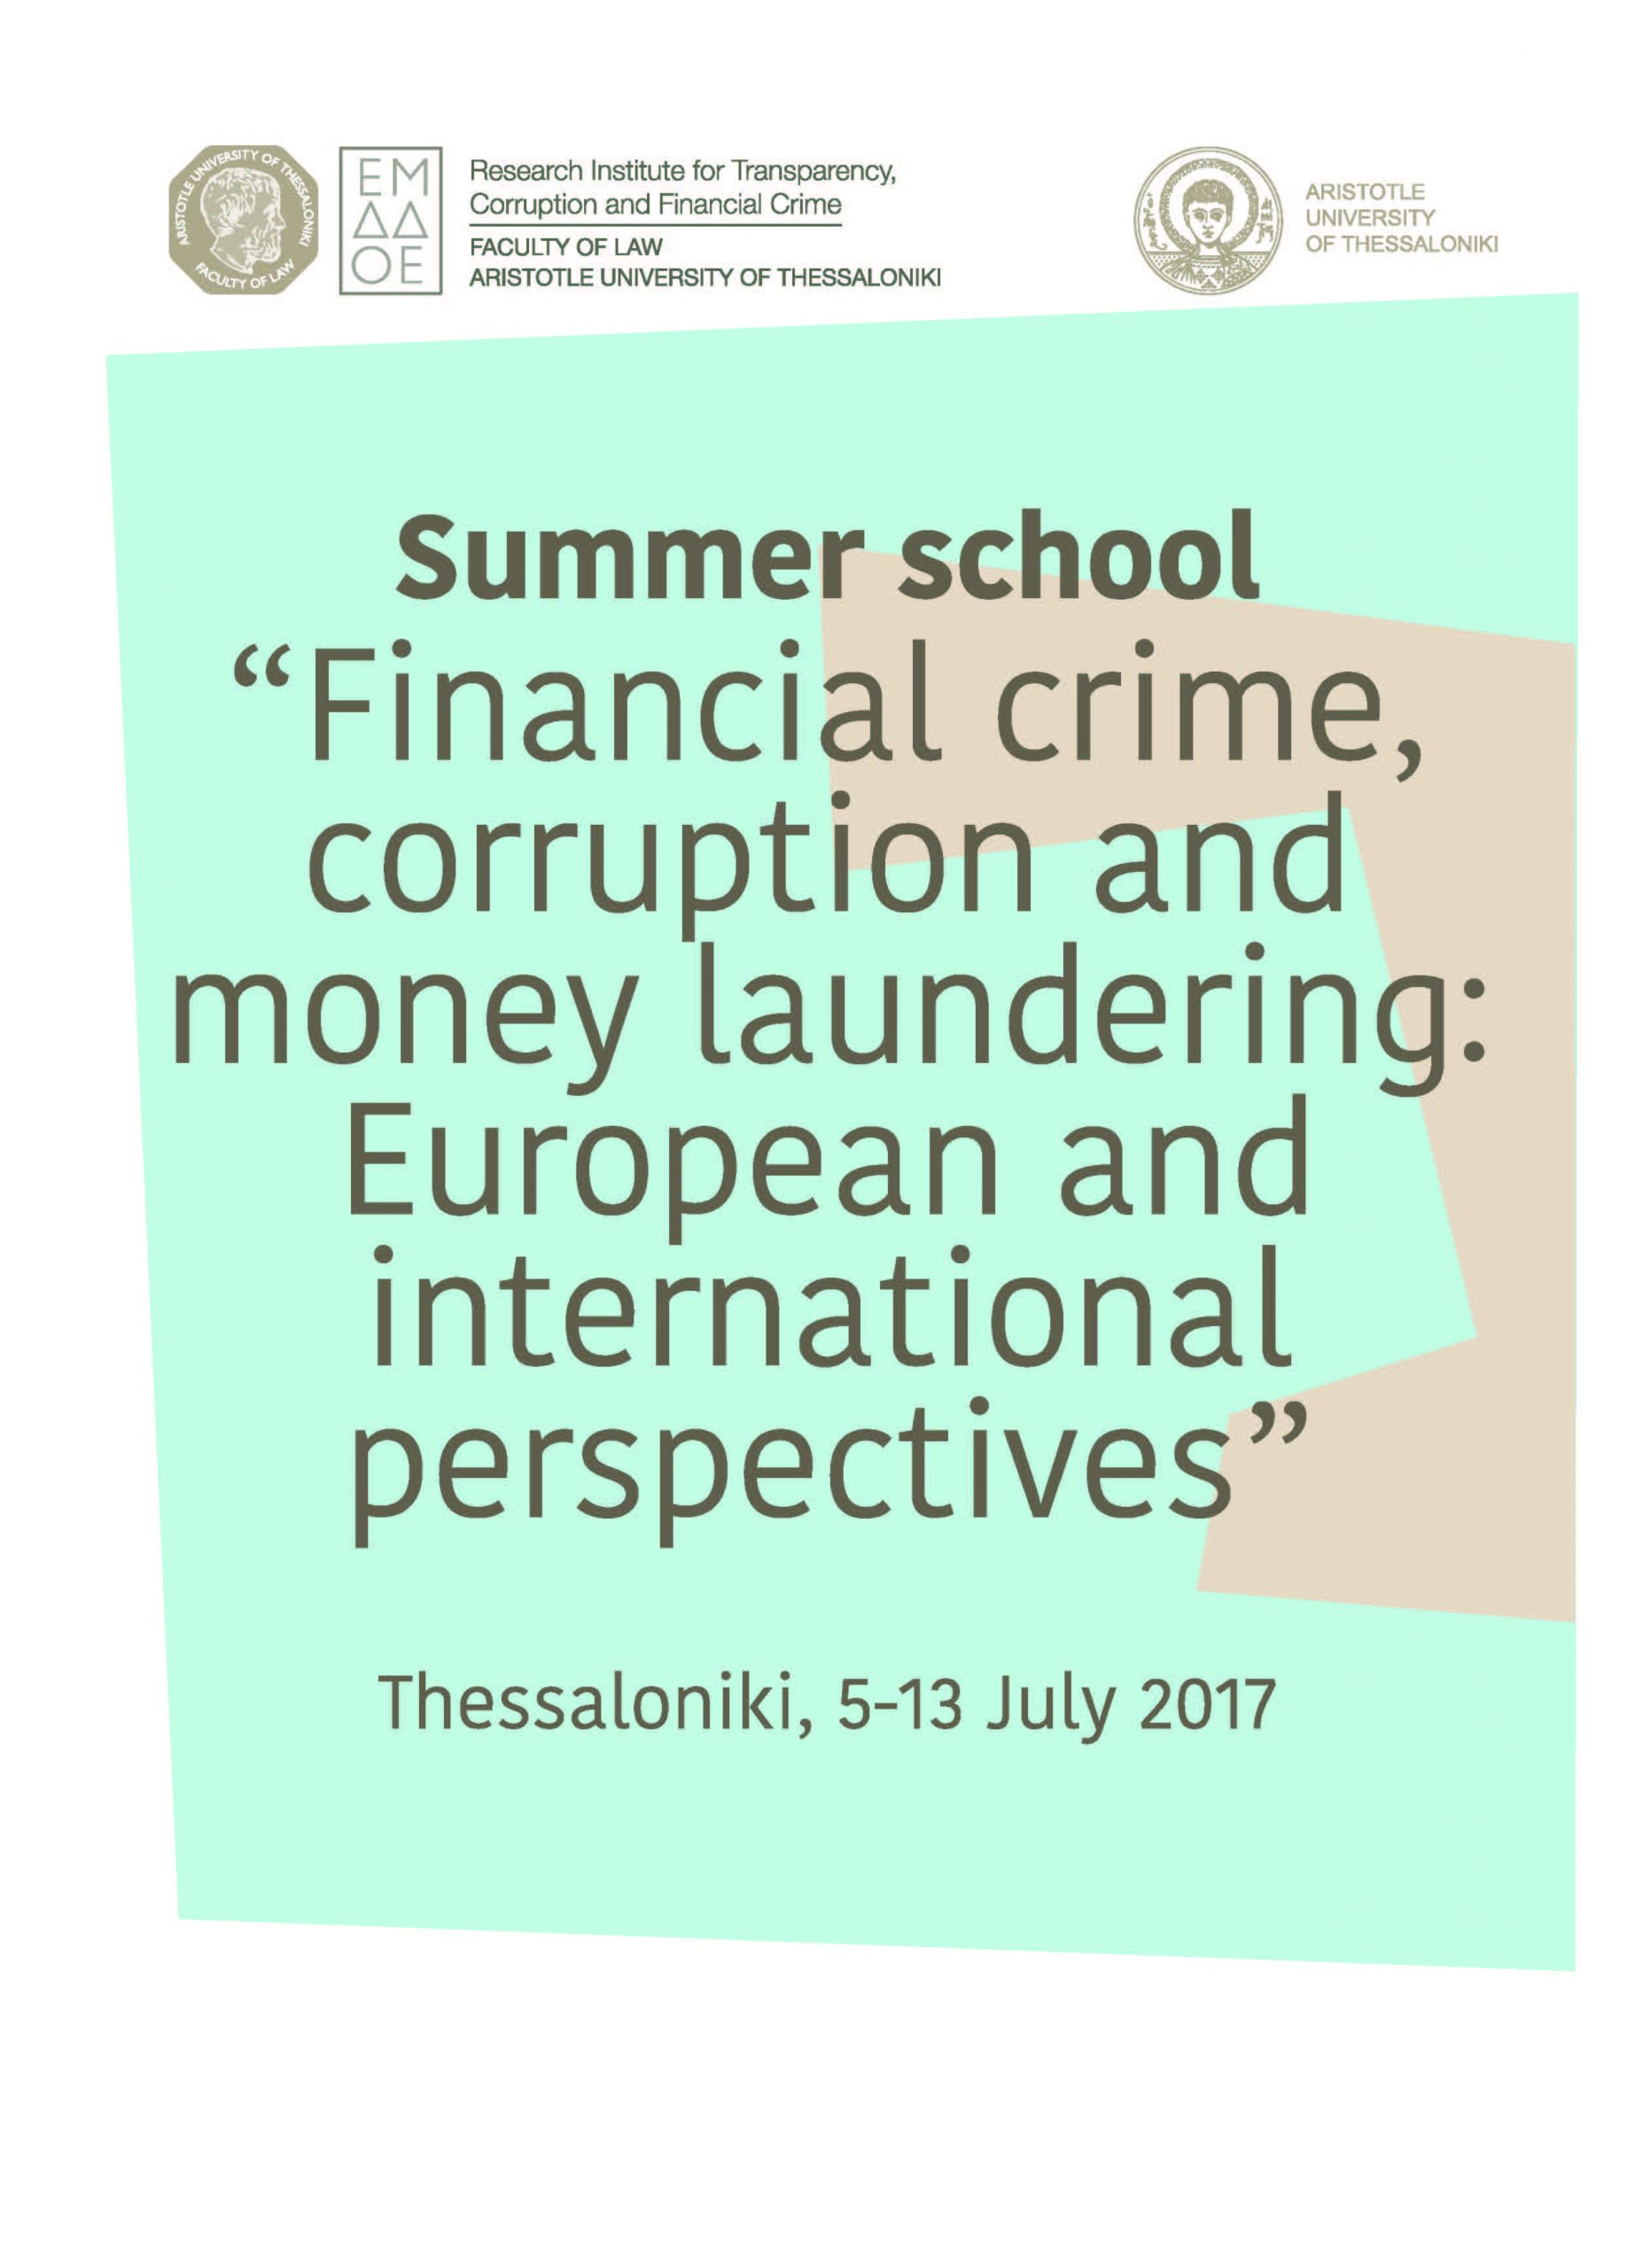 """Summer School """"Financial crime, corruption and money laundering: European and international perspectives"""", 55-13.07.2017"""